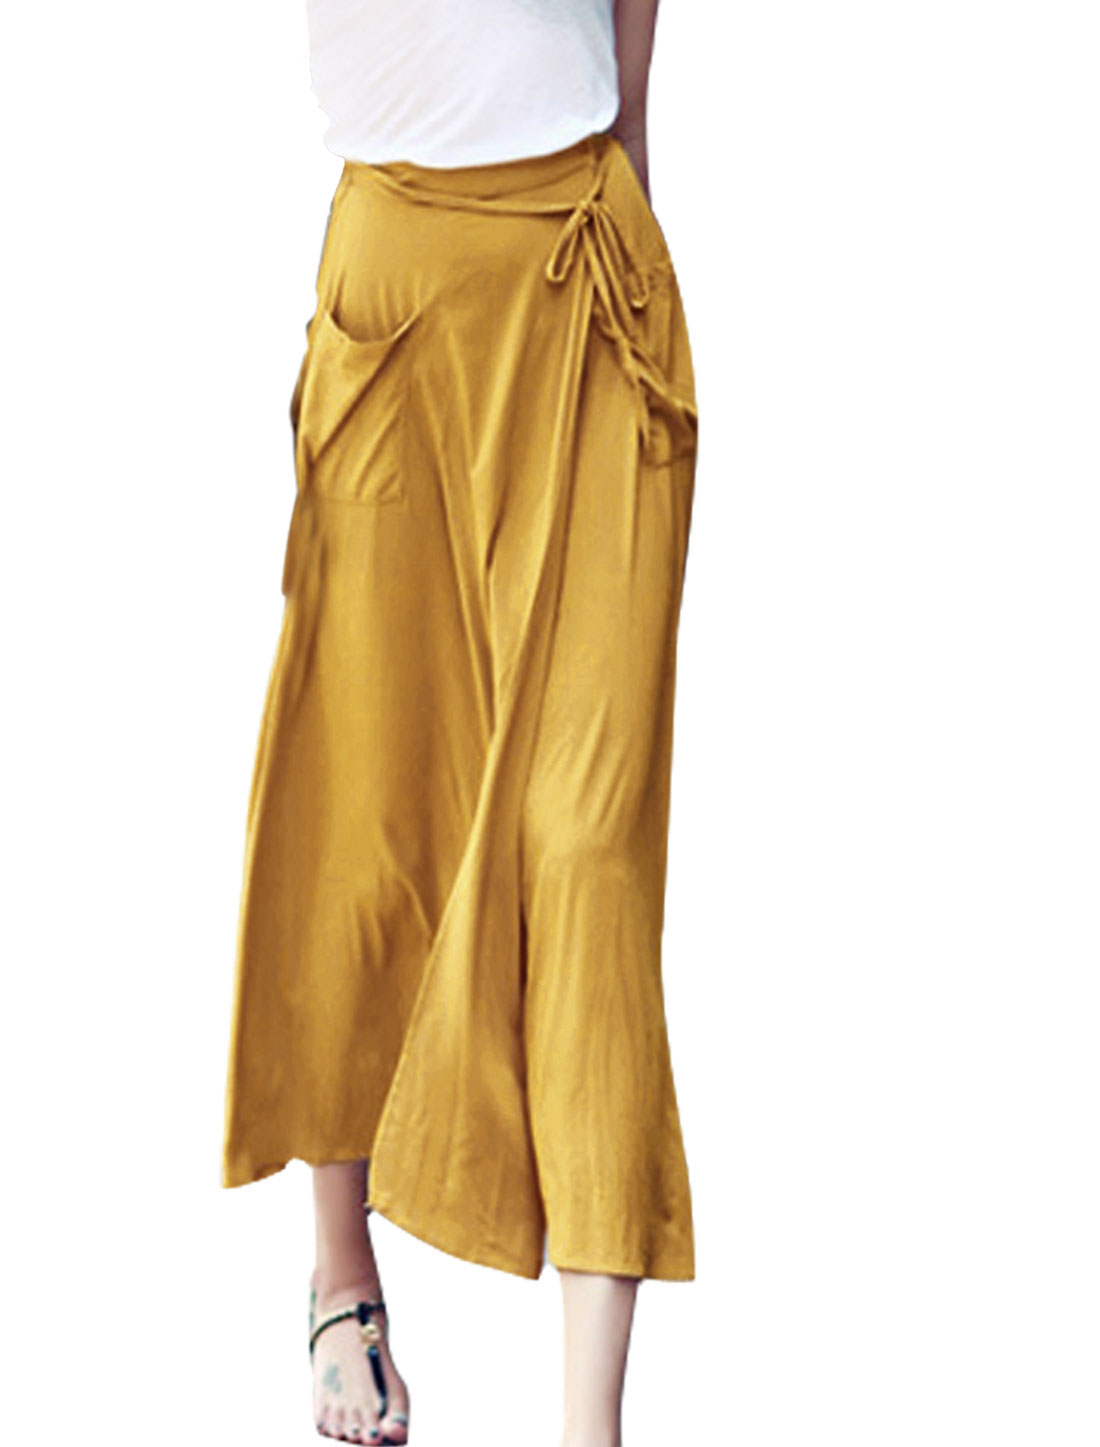 Women Elastic Waist Self Tie Strap Pockets Chiffon Skirt Yellow XS